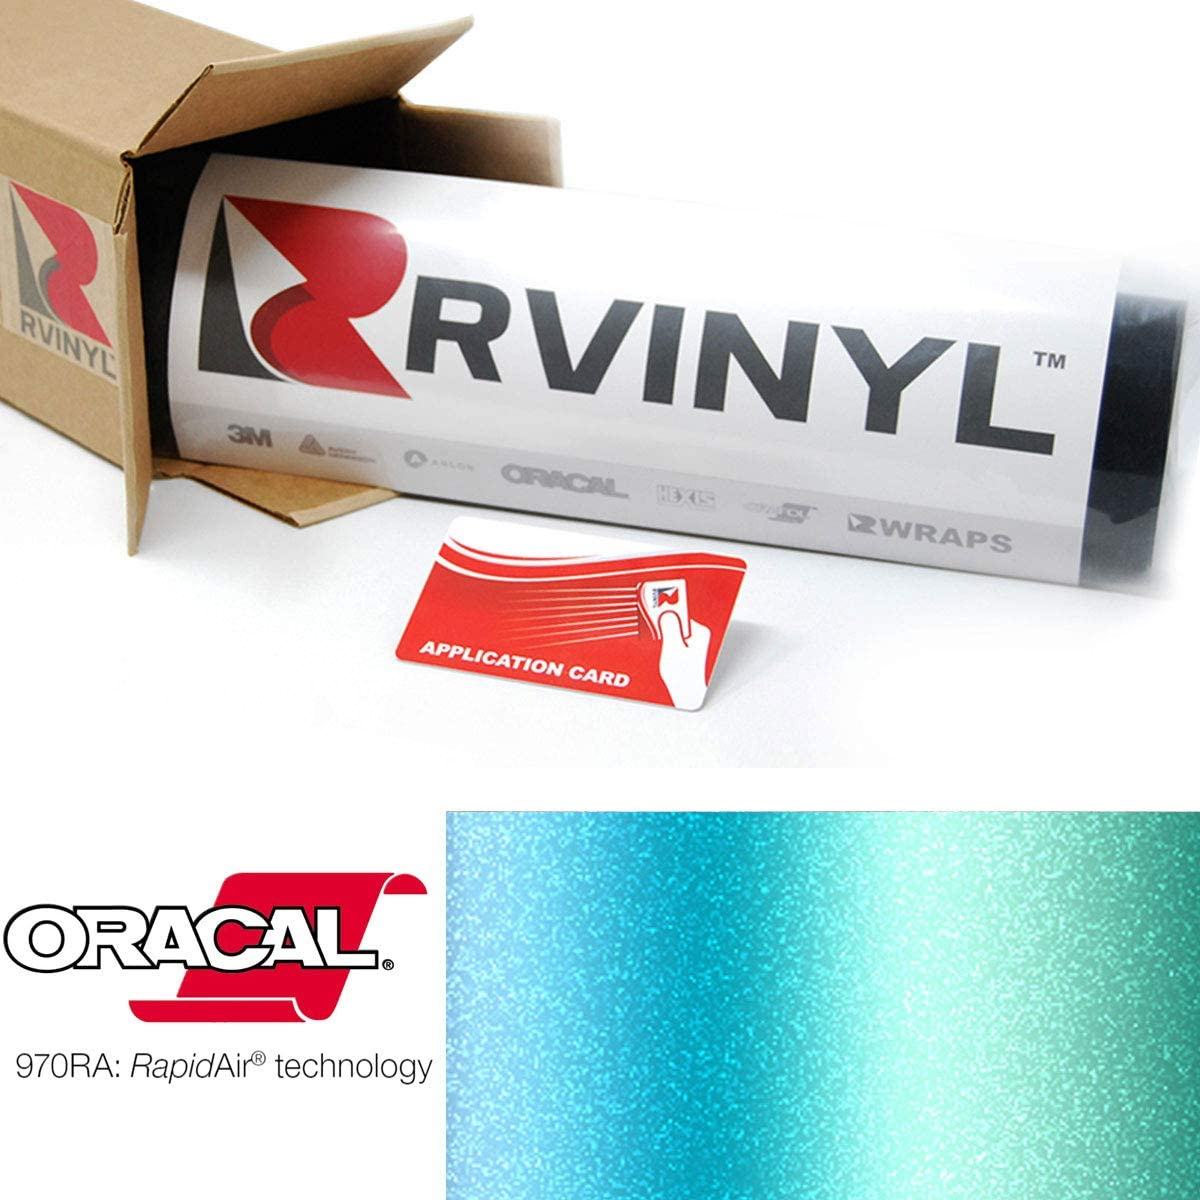 ORACAL Shift Effect Matte Aquamarine Wrapping Cast Film Vehicle Car Wrap Vinyl